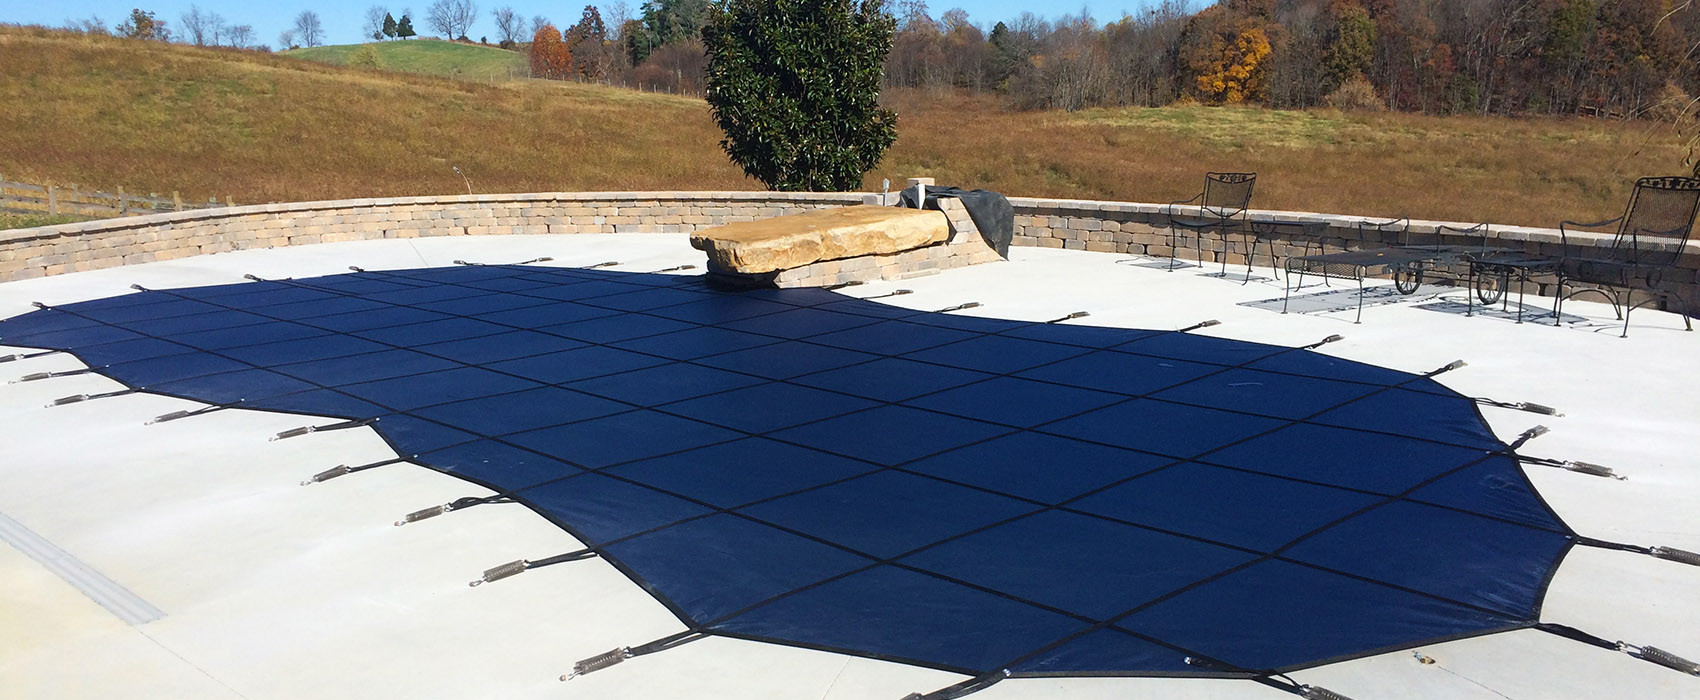 Best ideas about Inground Pool Cover . Save or Pin McEwen Industries Now.